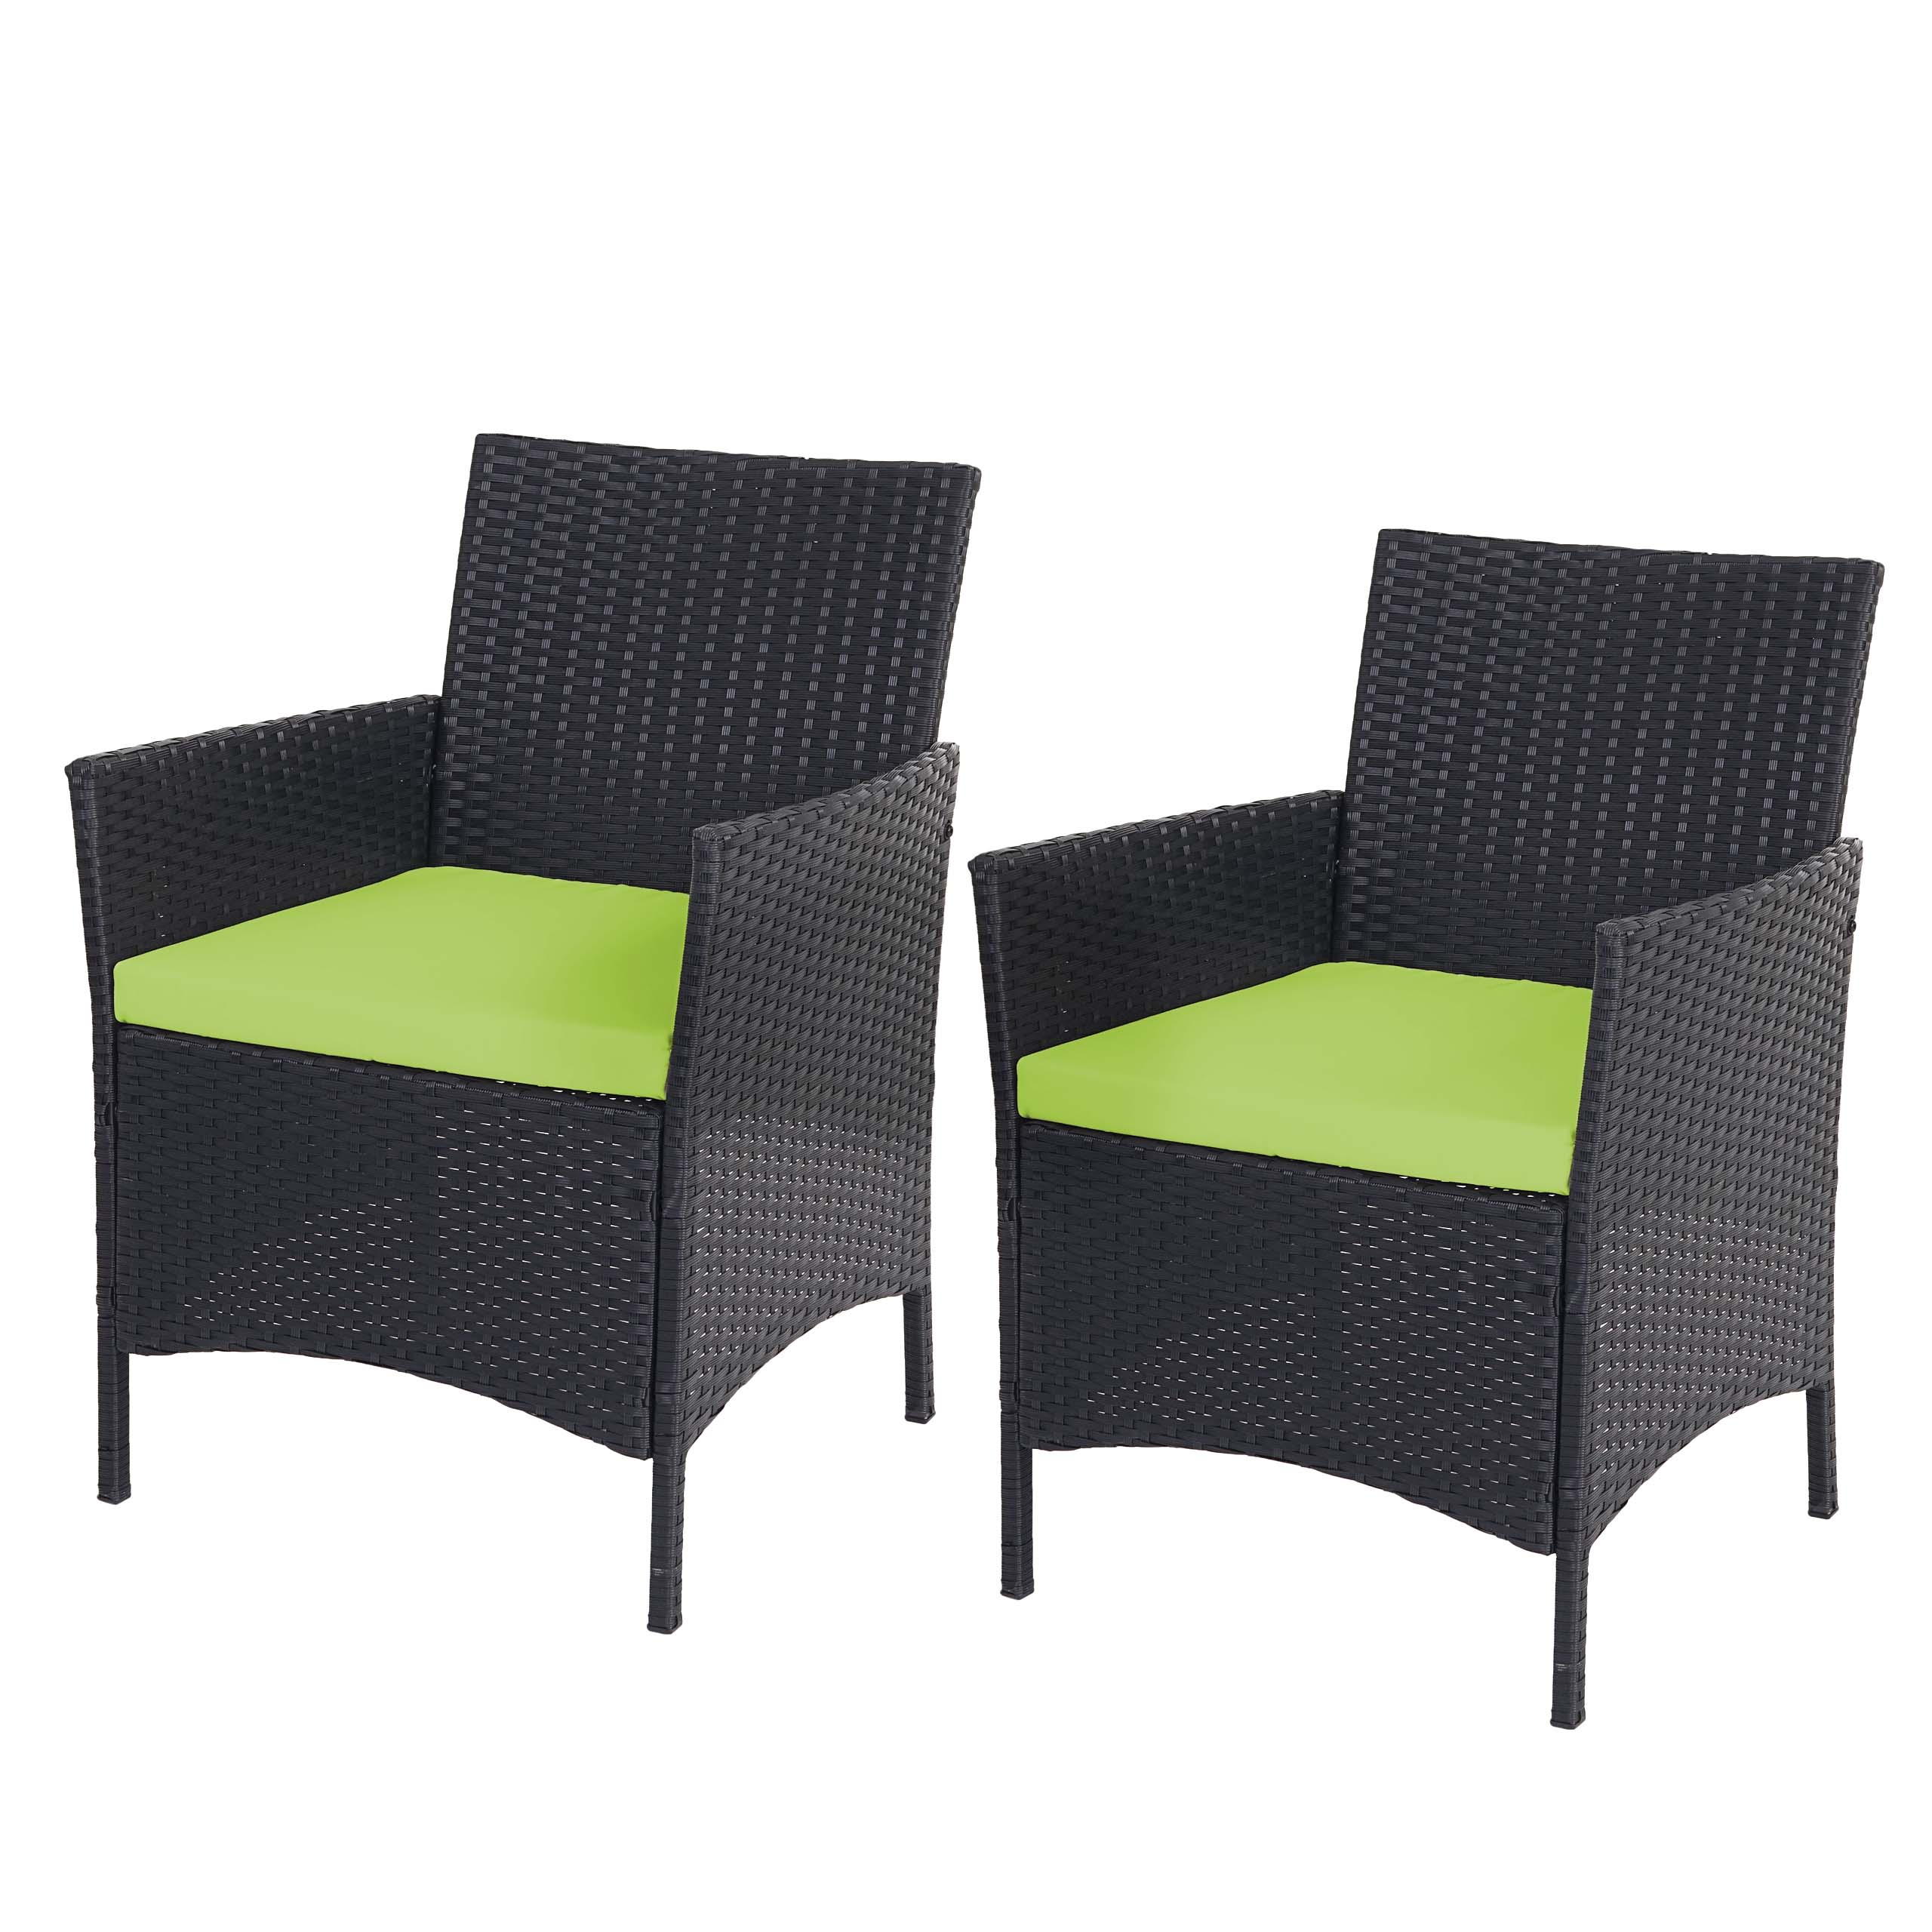 2x poly rattan gartensessel halden korbsessel anthrazit kissen gr n. Black Bedroom Furniture Sets. Home Design Ideas